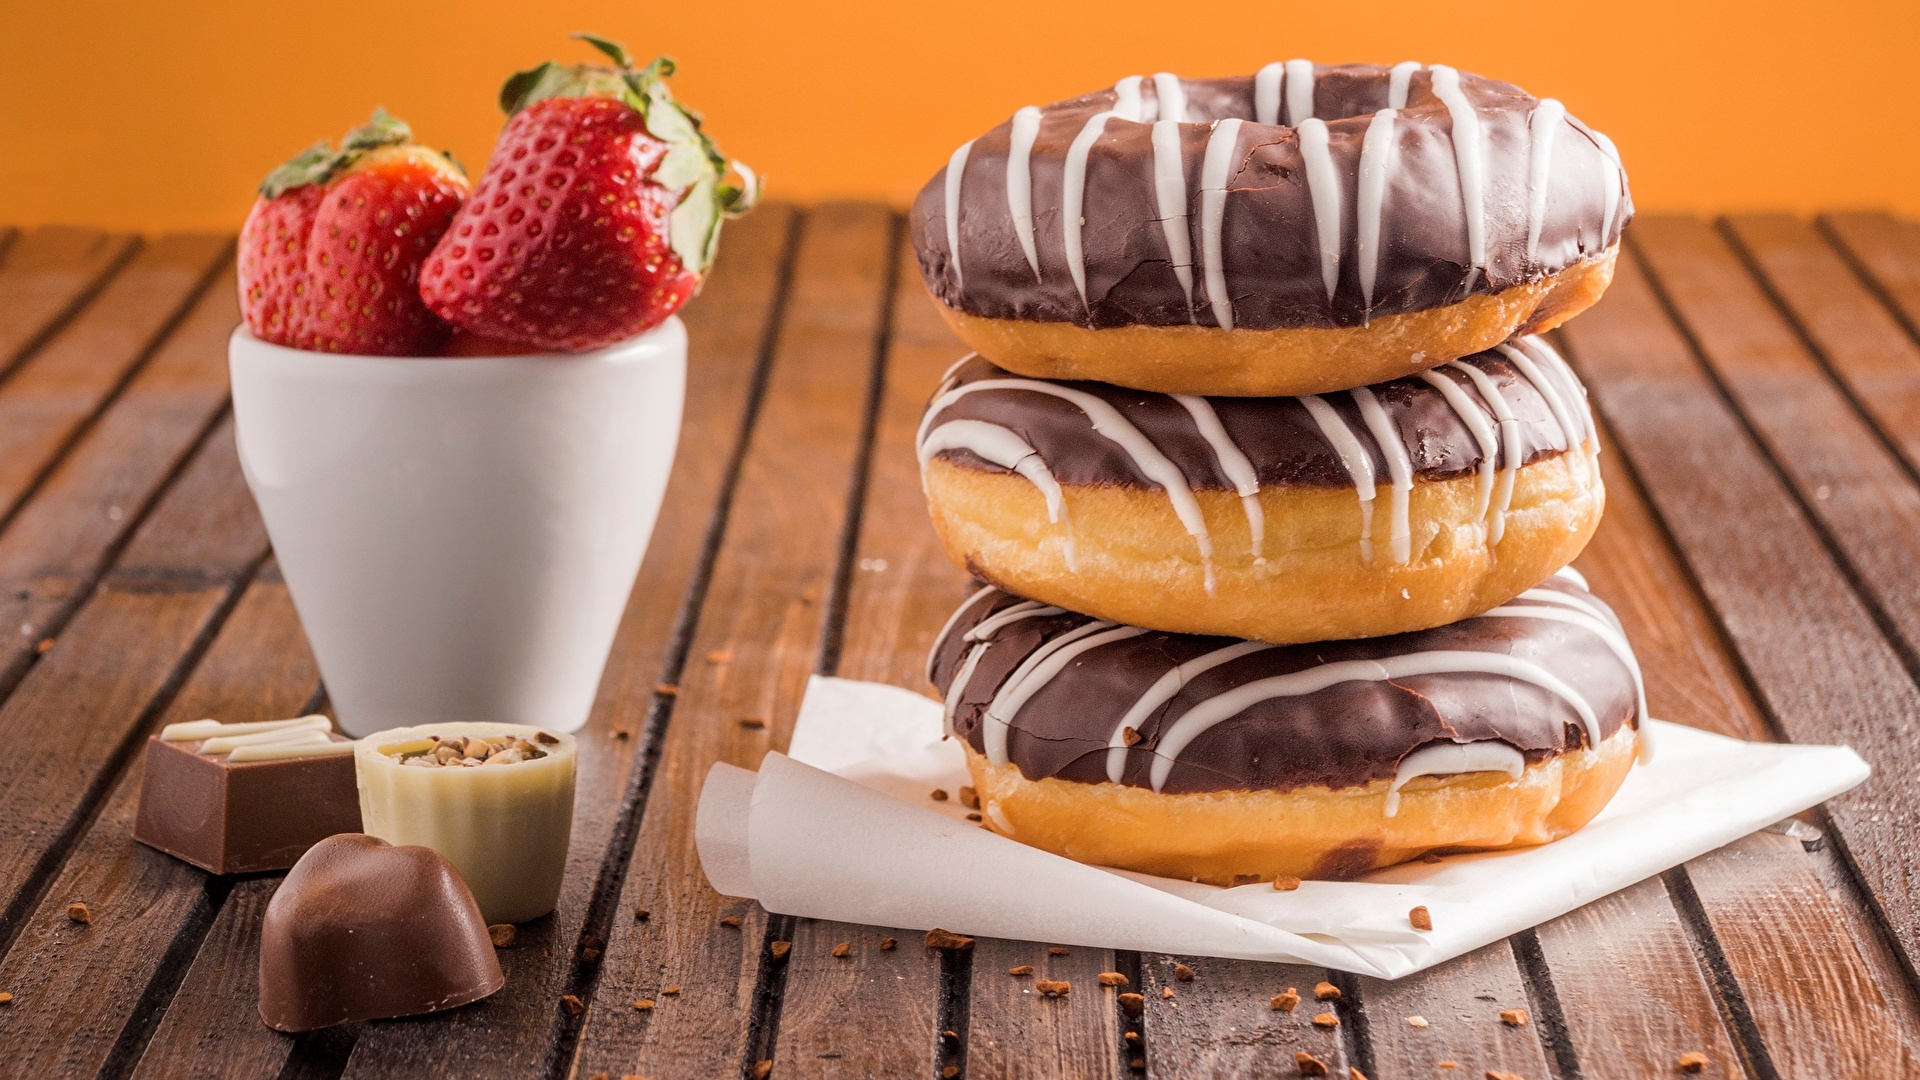 Pictures Chocolate Candy Donuts Strawberry Food 1920x1080 Doughnut